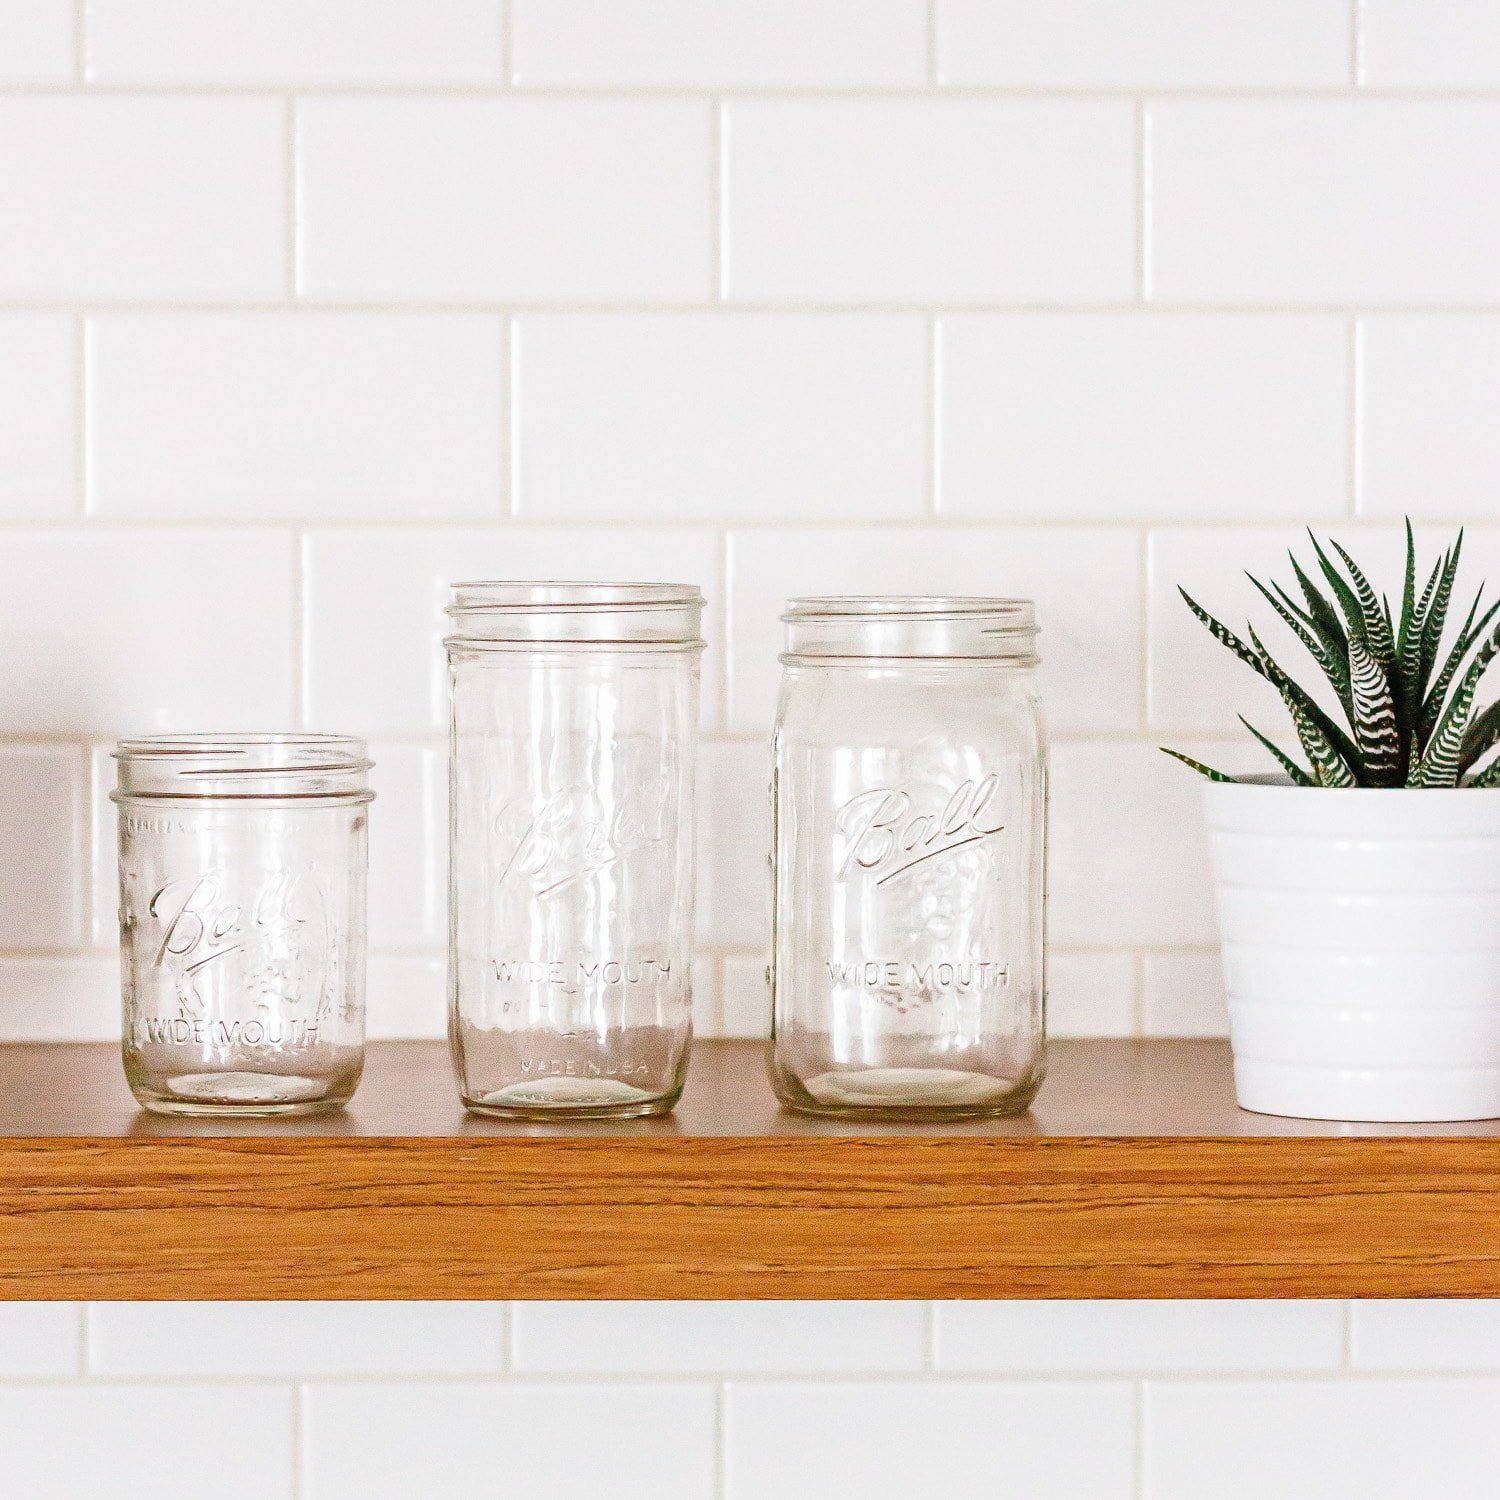 Three glass mason jars sitting on a kitchen shelf next to a plant.